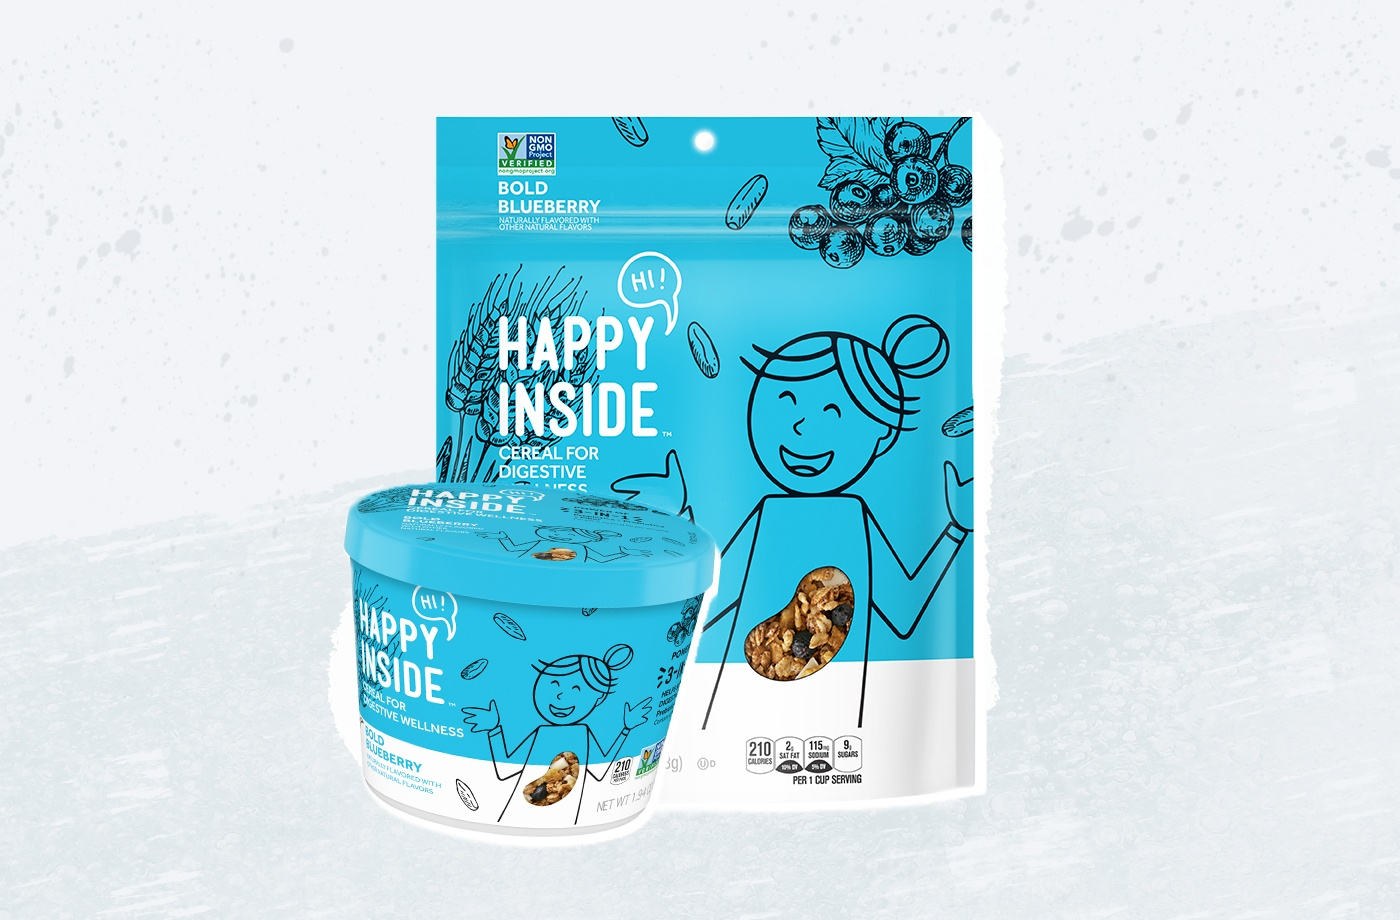 Thumbnail for Kellogg's just dropped a new probiotic cereal that's actually pretty legit